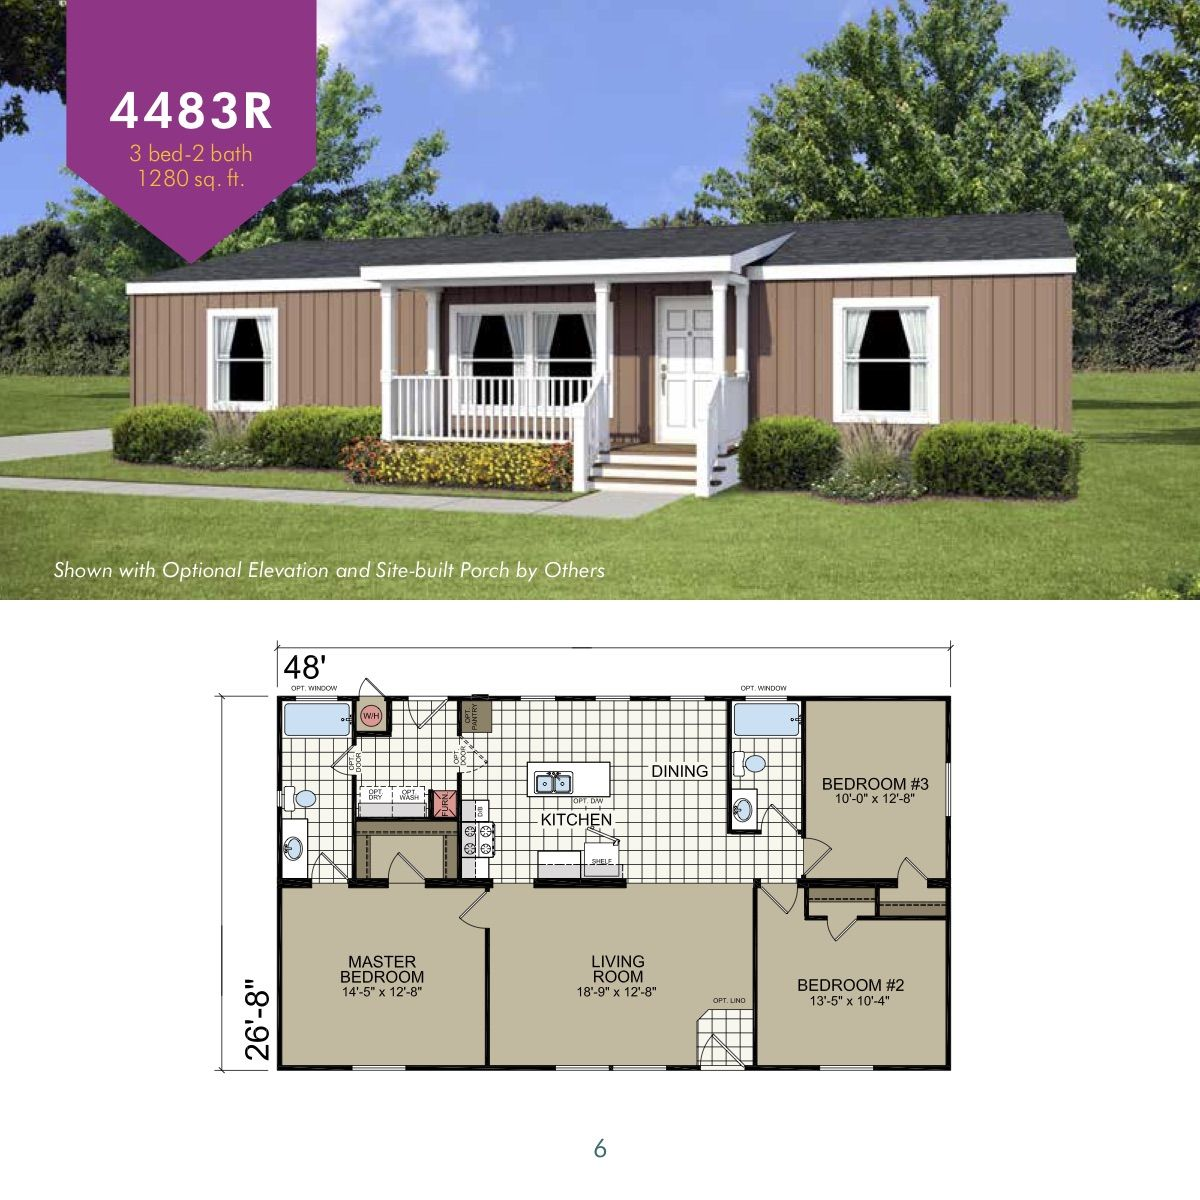 Le4483r Square House Plans House Design Pictures Bedroom House